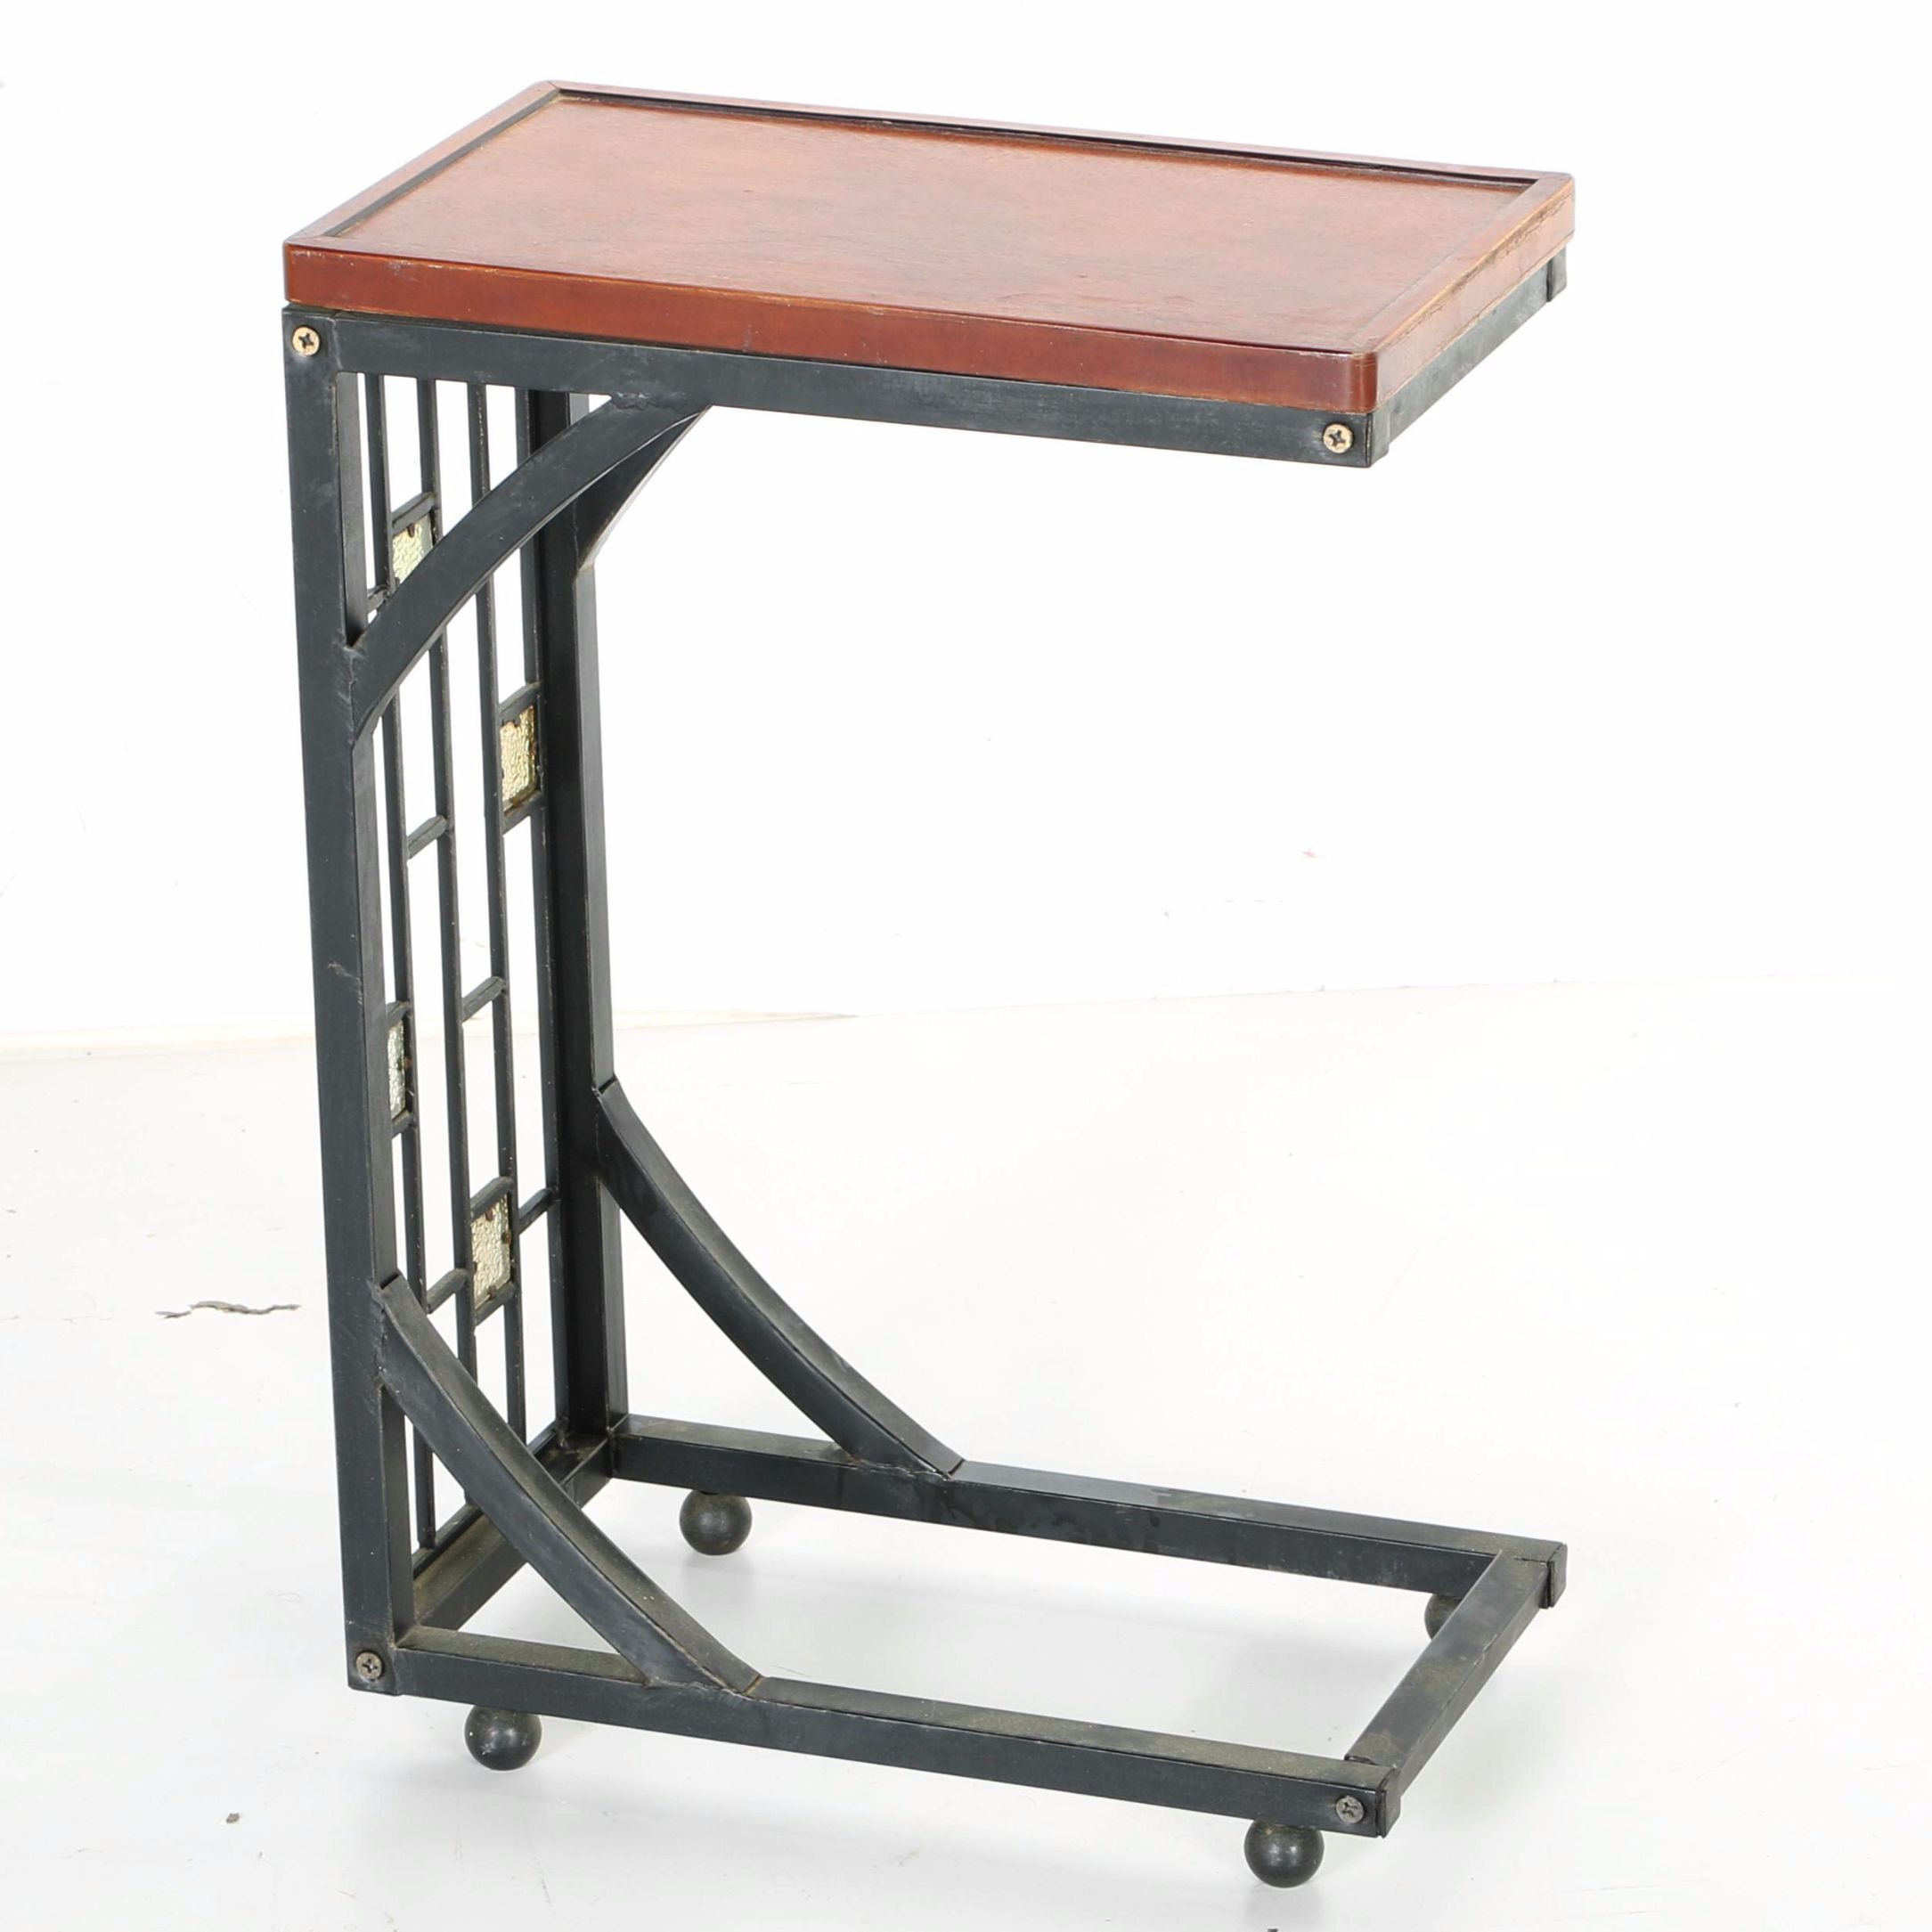 Rolling Iron Side Table With a Wood Top